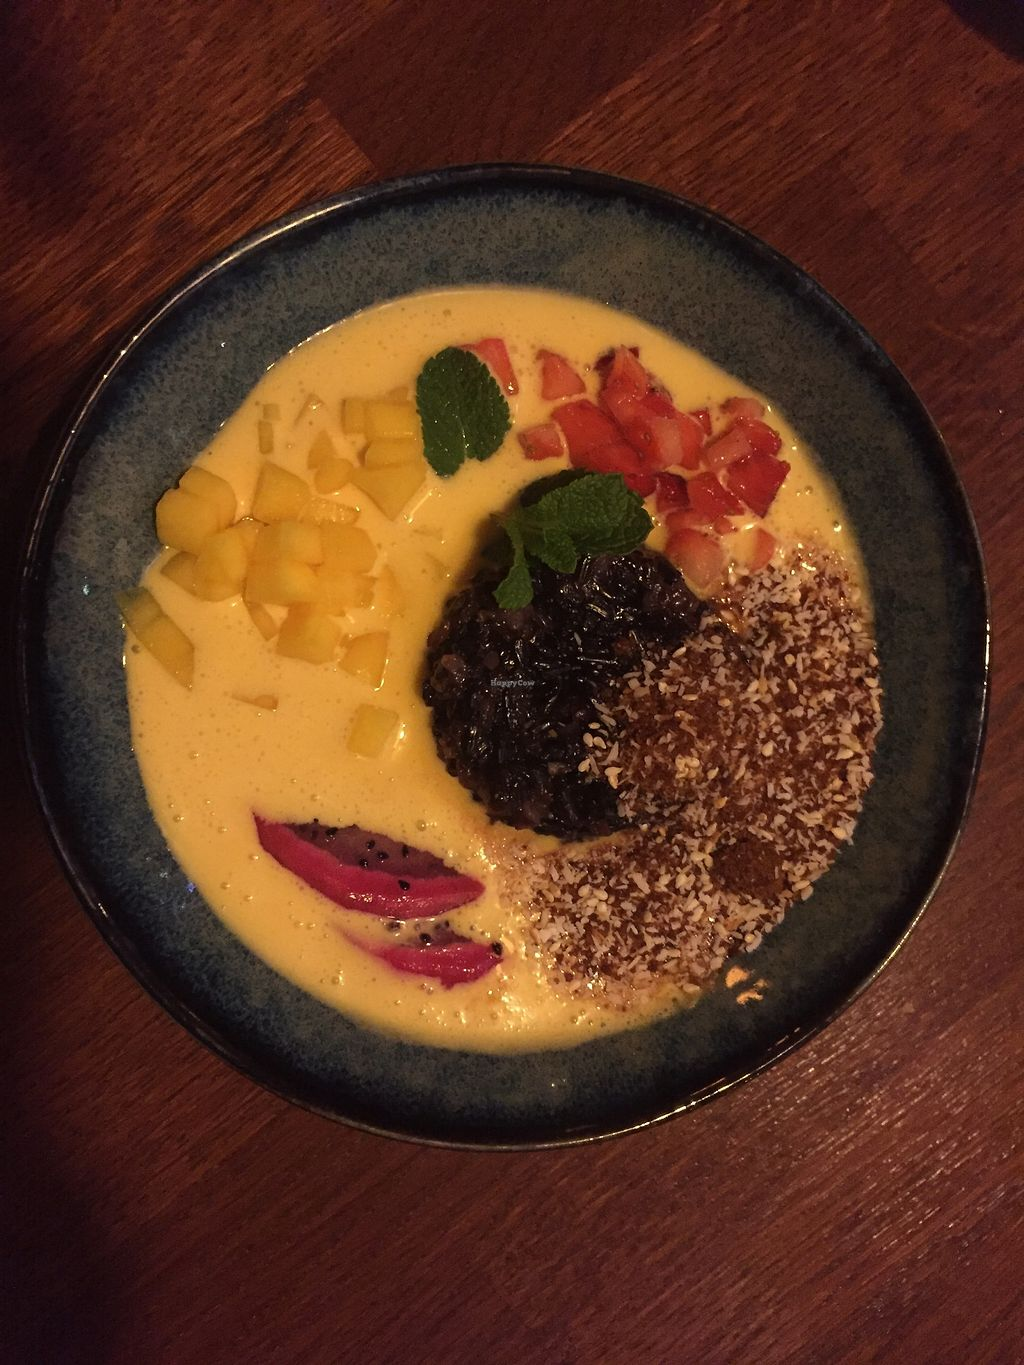 """Photo of Jasmijn en Ik  by <a href=""""/members/profile/Emanuelle"""">Emanuelle</a> <br/>Vegan desert with sticky rice, coconut and mango yum! <br/> March 8, 2018  - <a href='/contact/abuse/image/26447/368279'>Report</a>"""